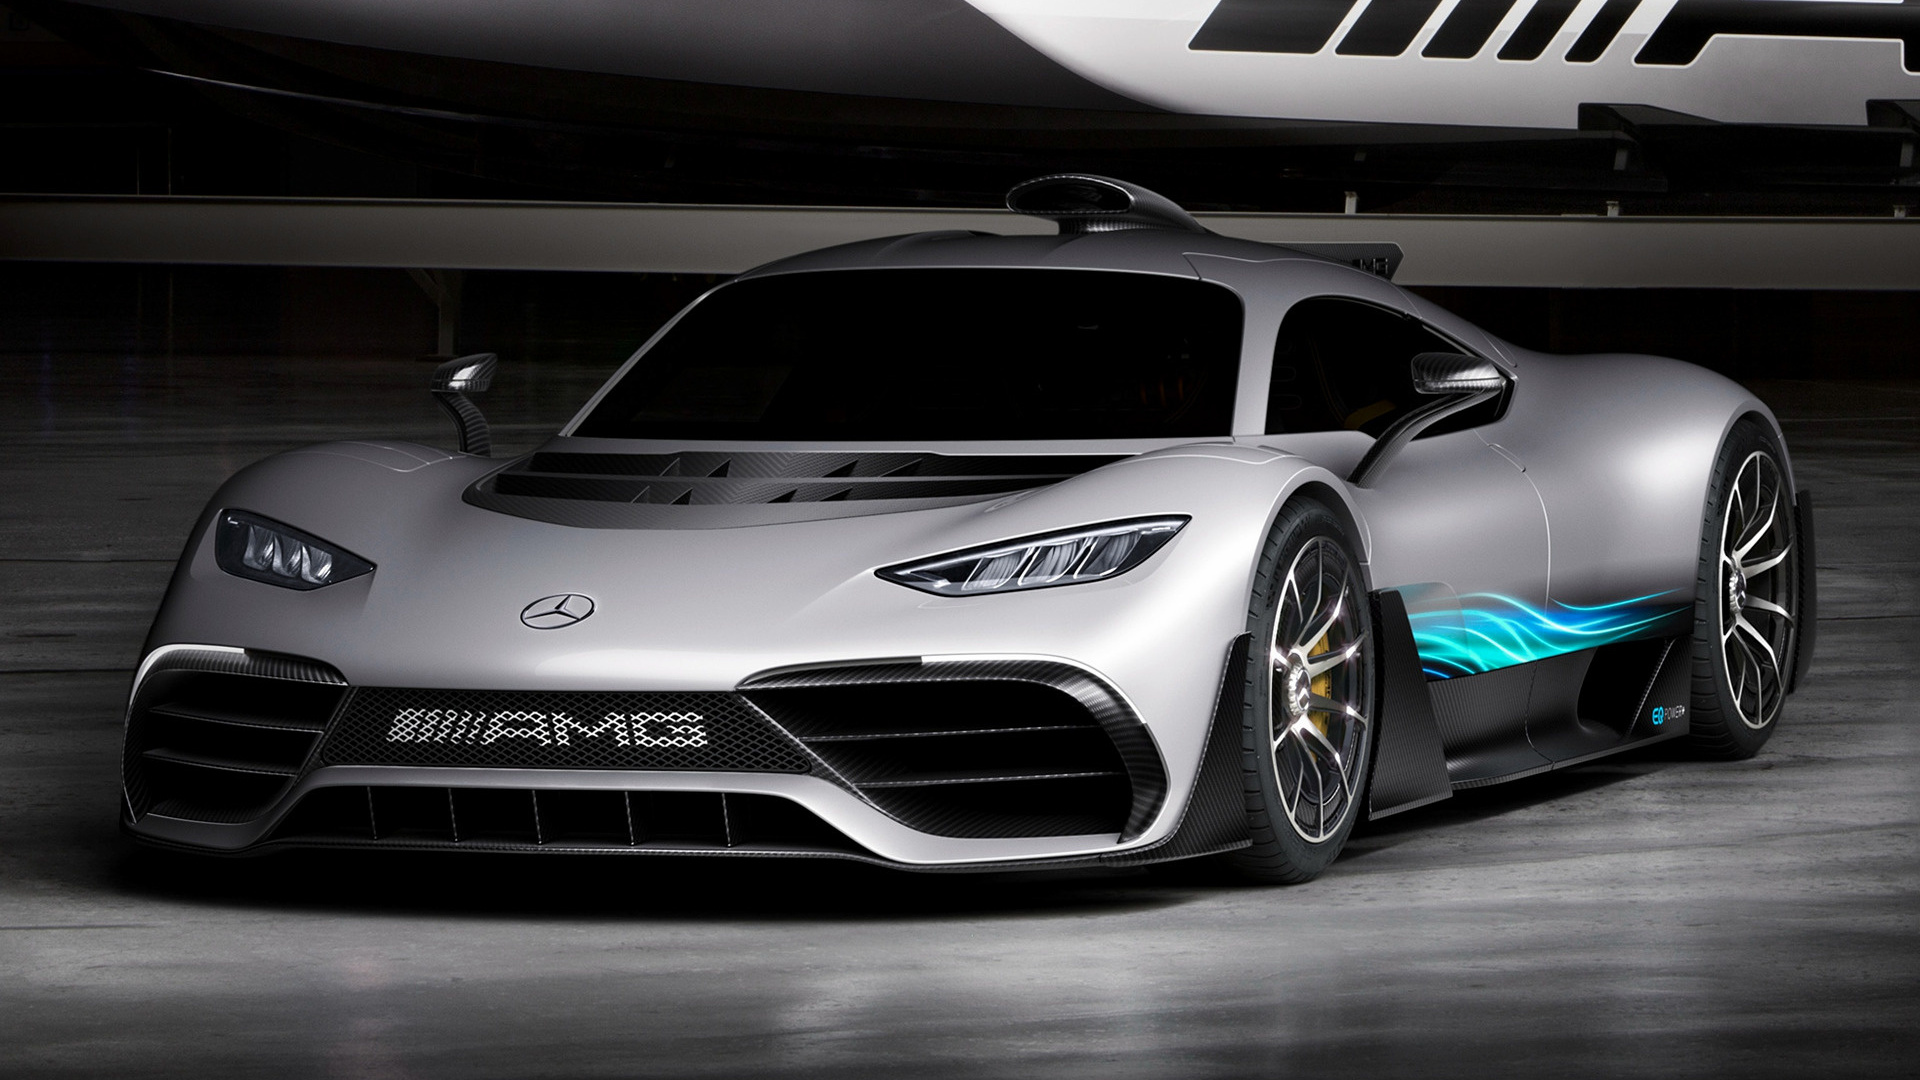 Suzuki Car Wallpaper Mercedes Amg Project One 2017 Wallpapers And Hd Images